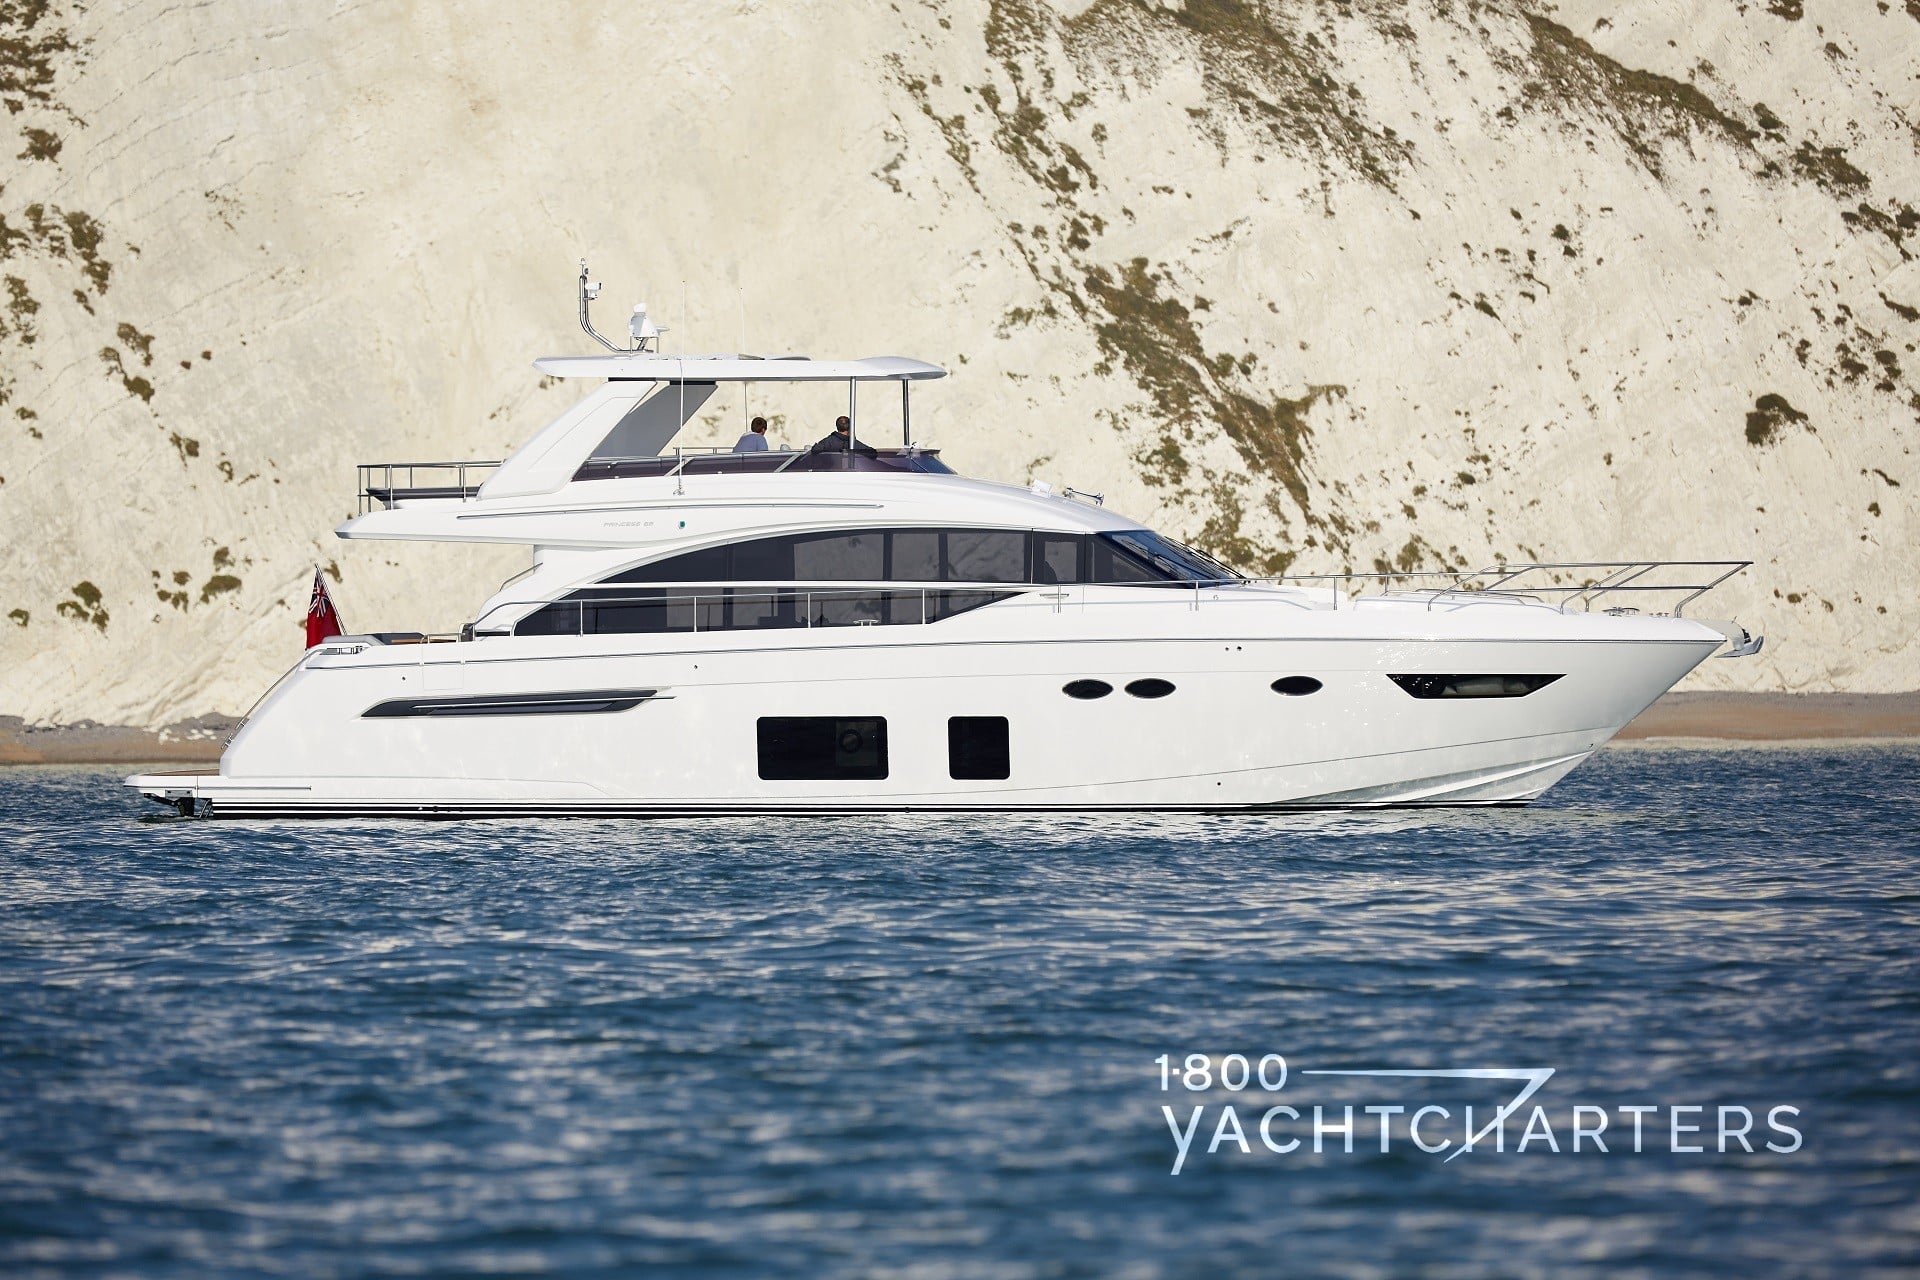 Yacht side view